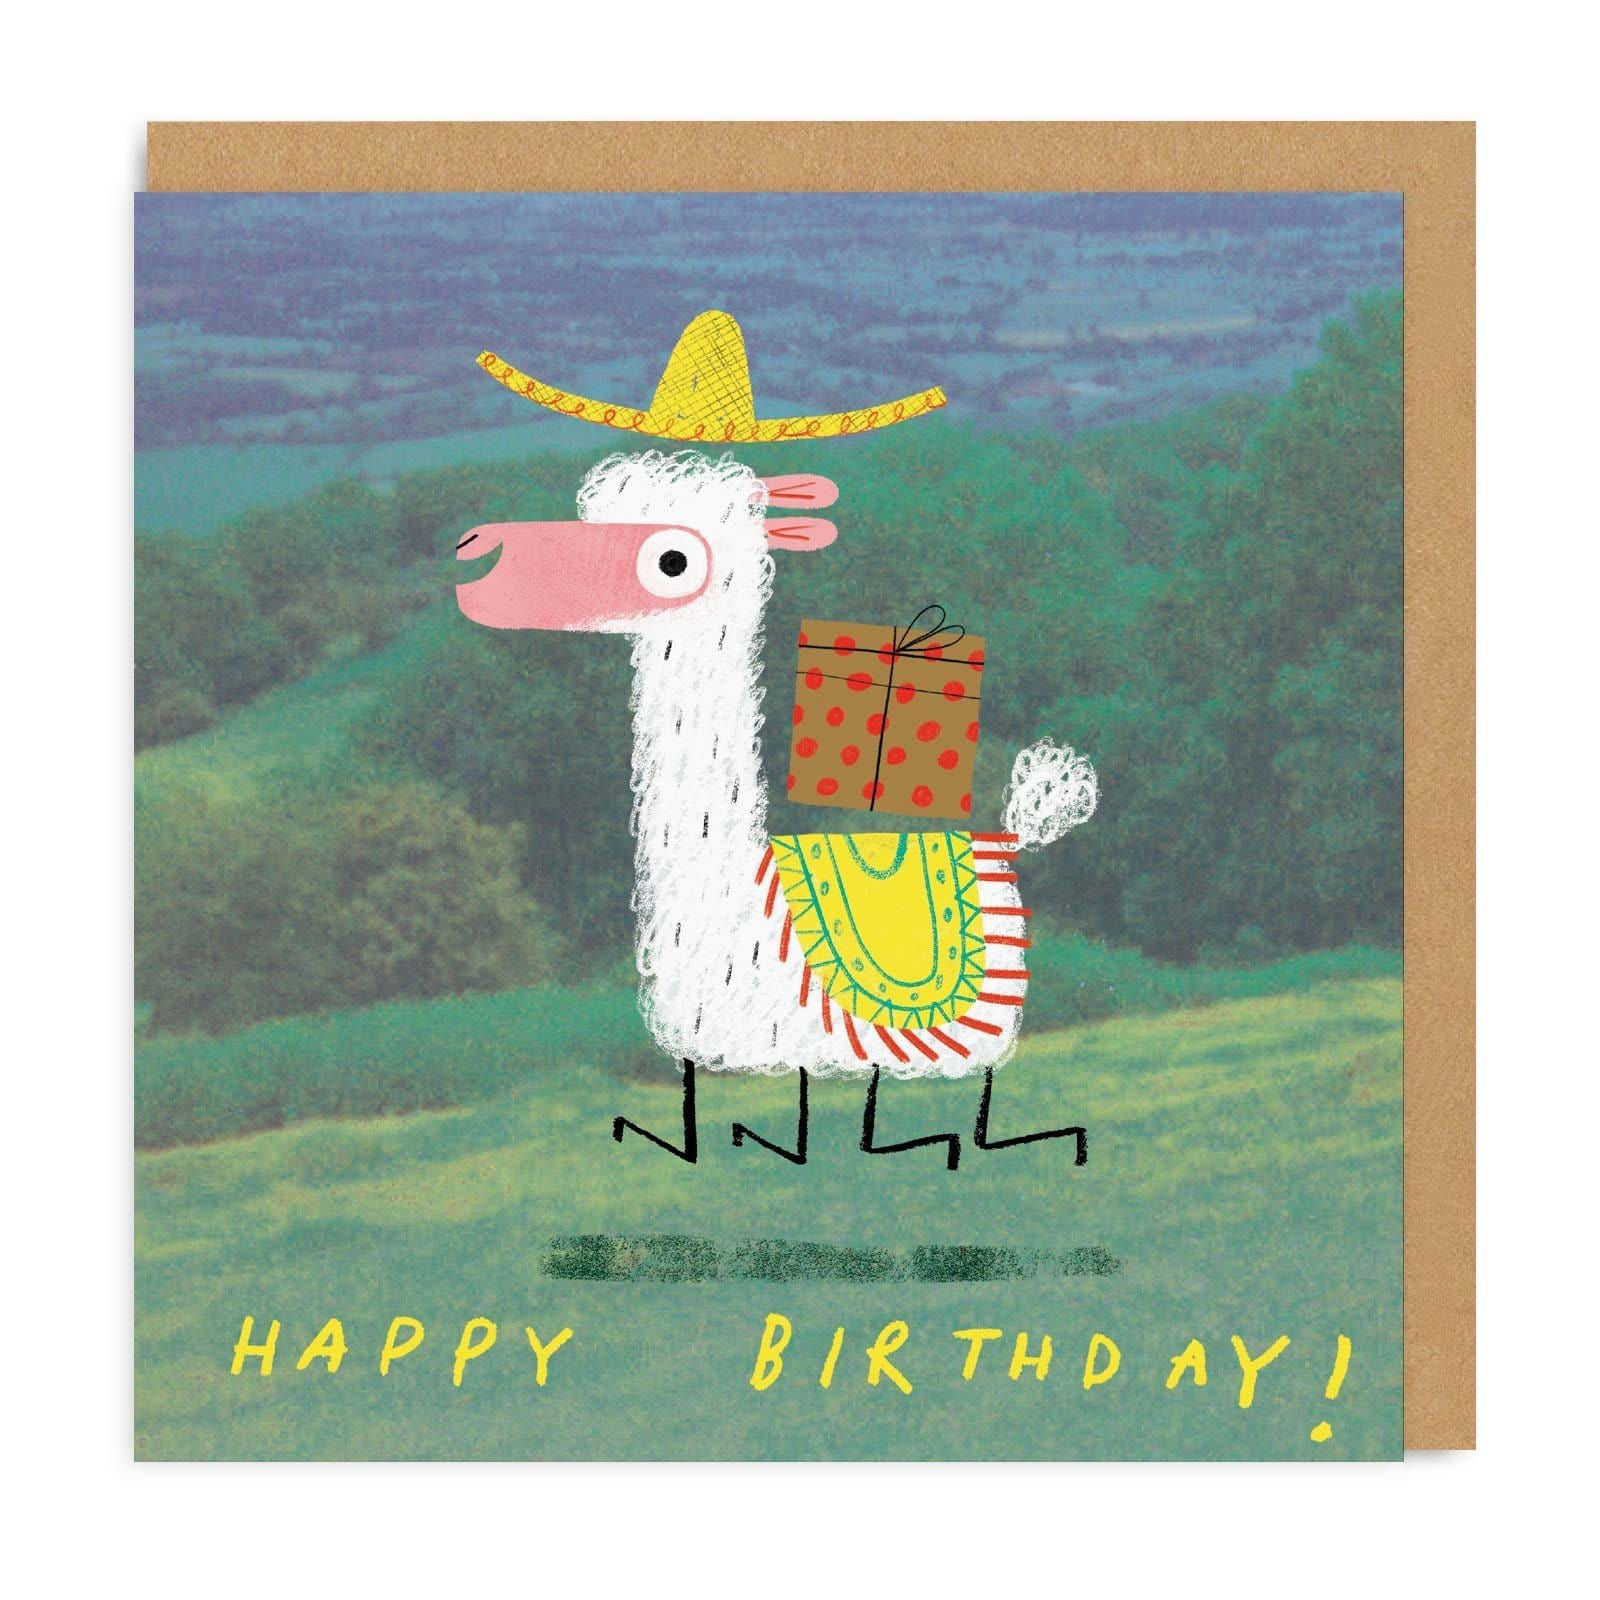 Square Birthday card with illustrated Alpace with hat on carrying present, with forest in background